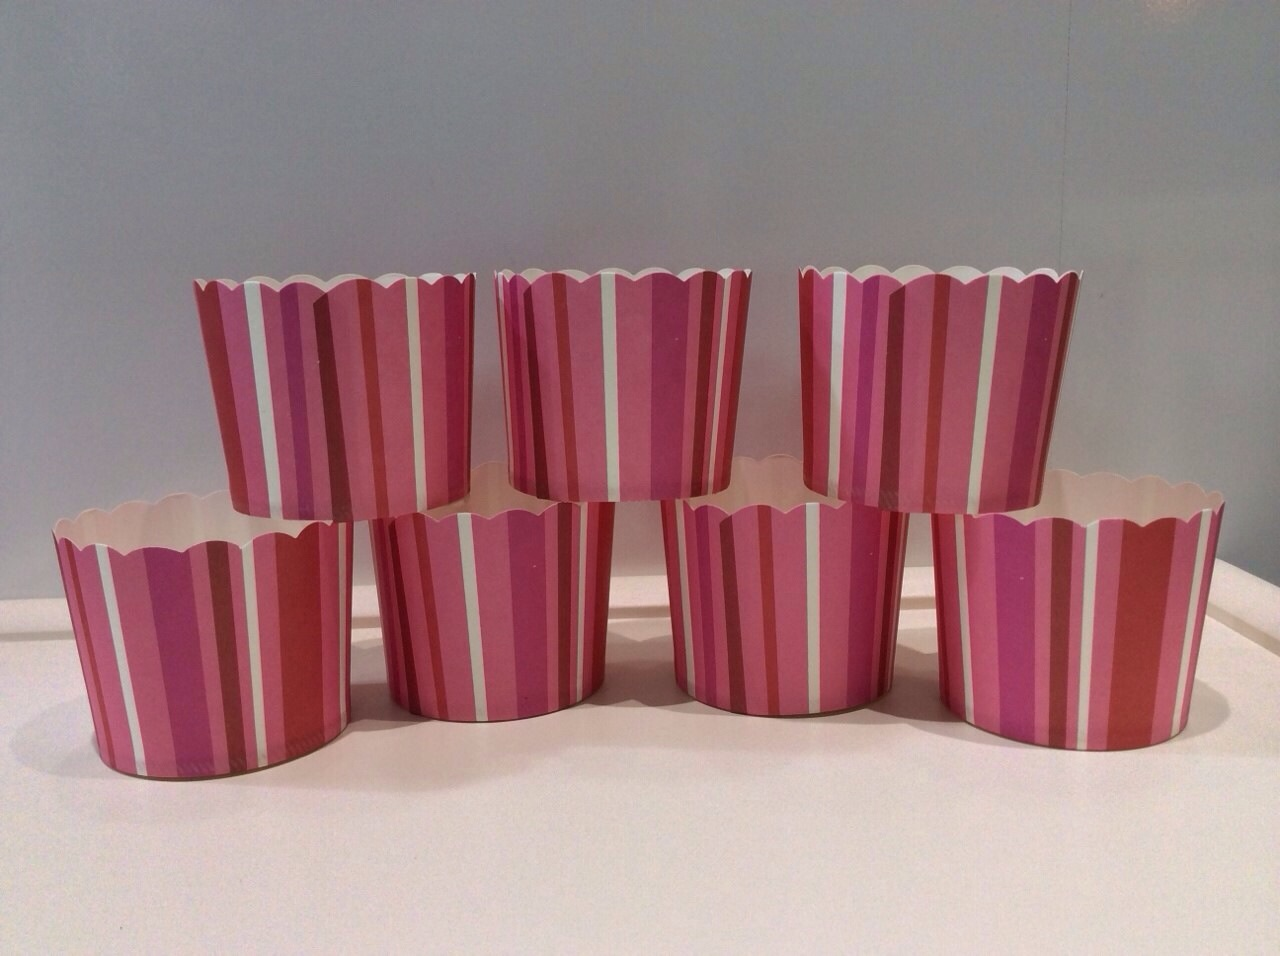 PC-EI-M60/55 STRIPE/P Muffin cup Stripe/PInk ลายทาง